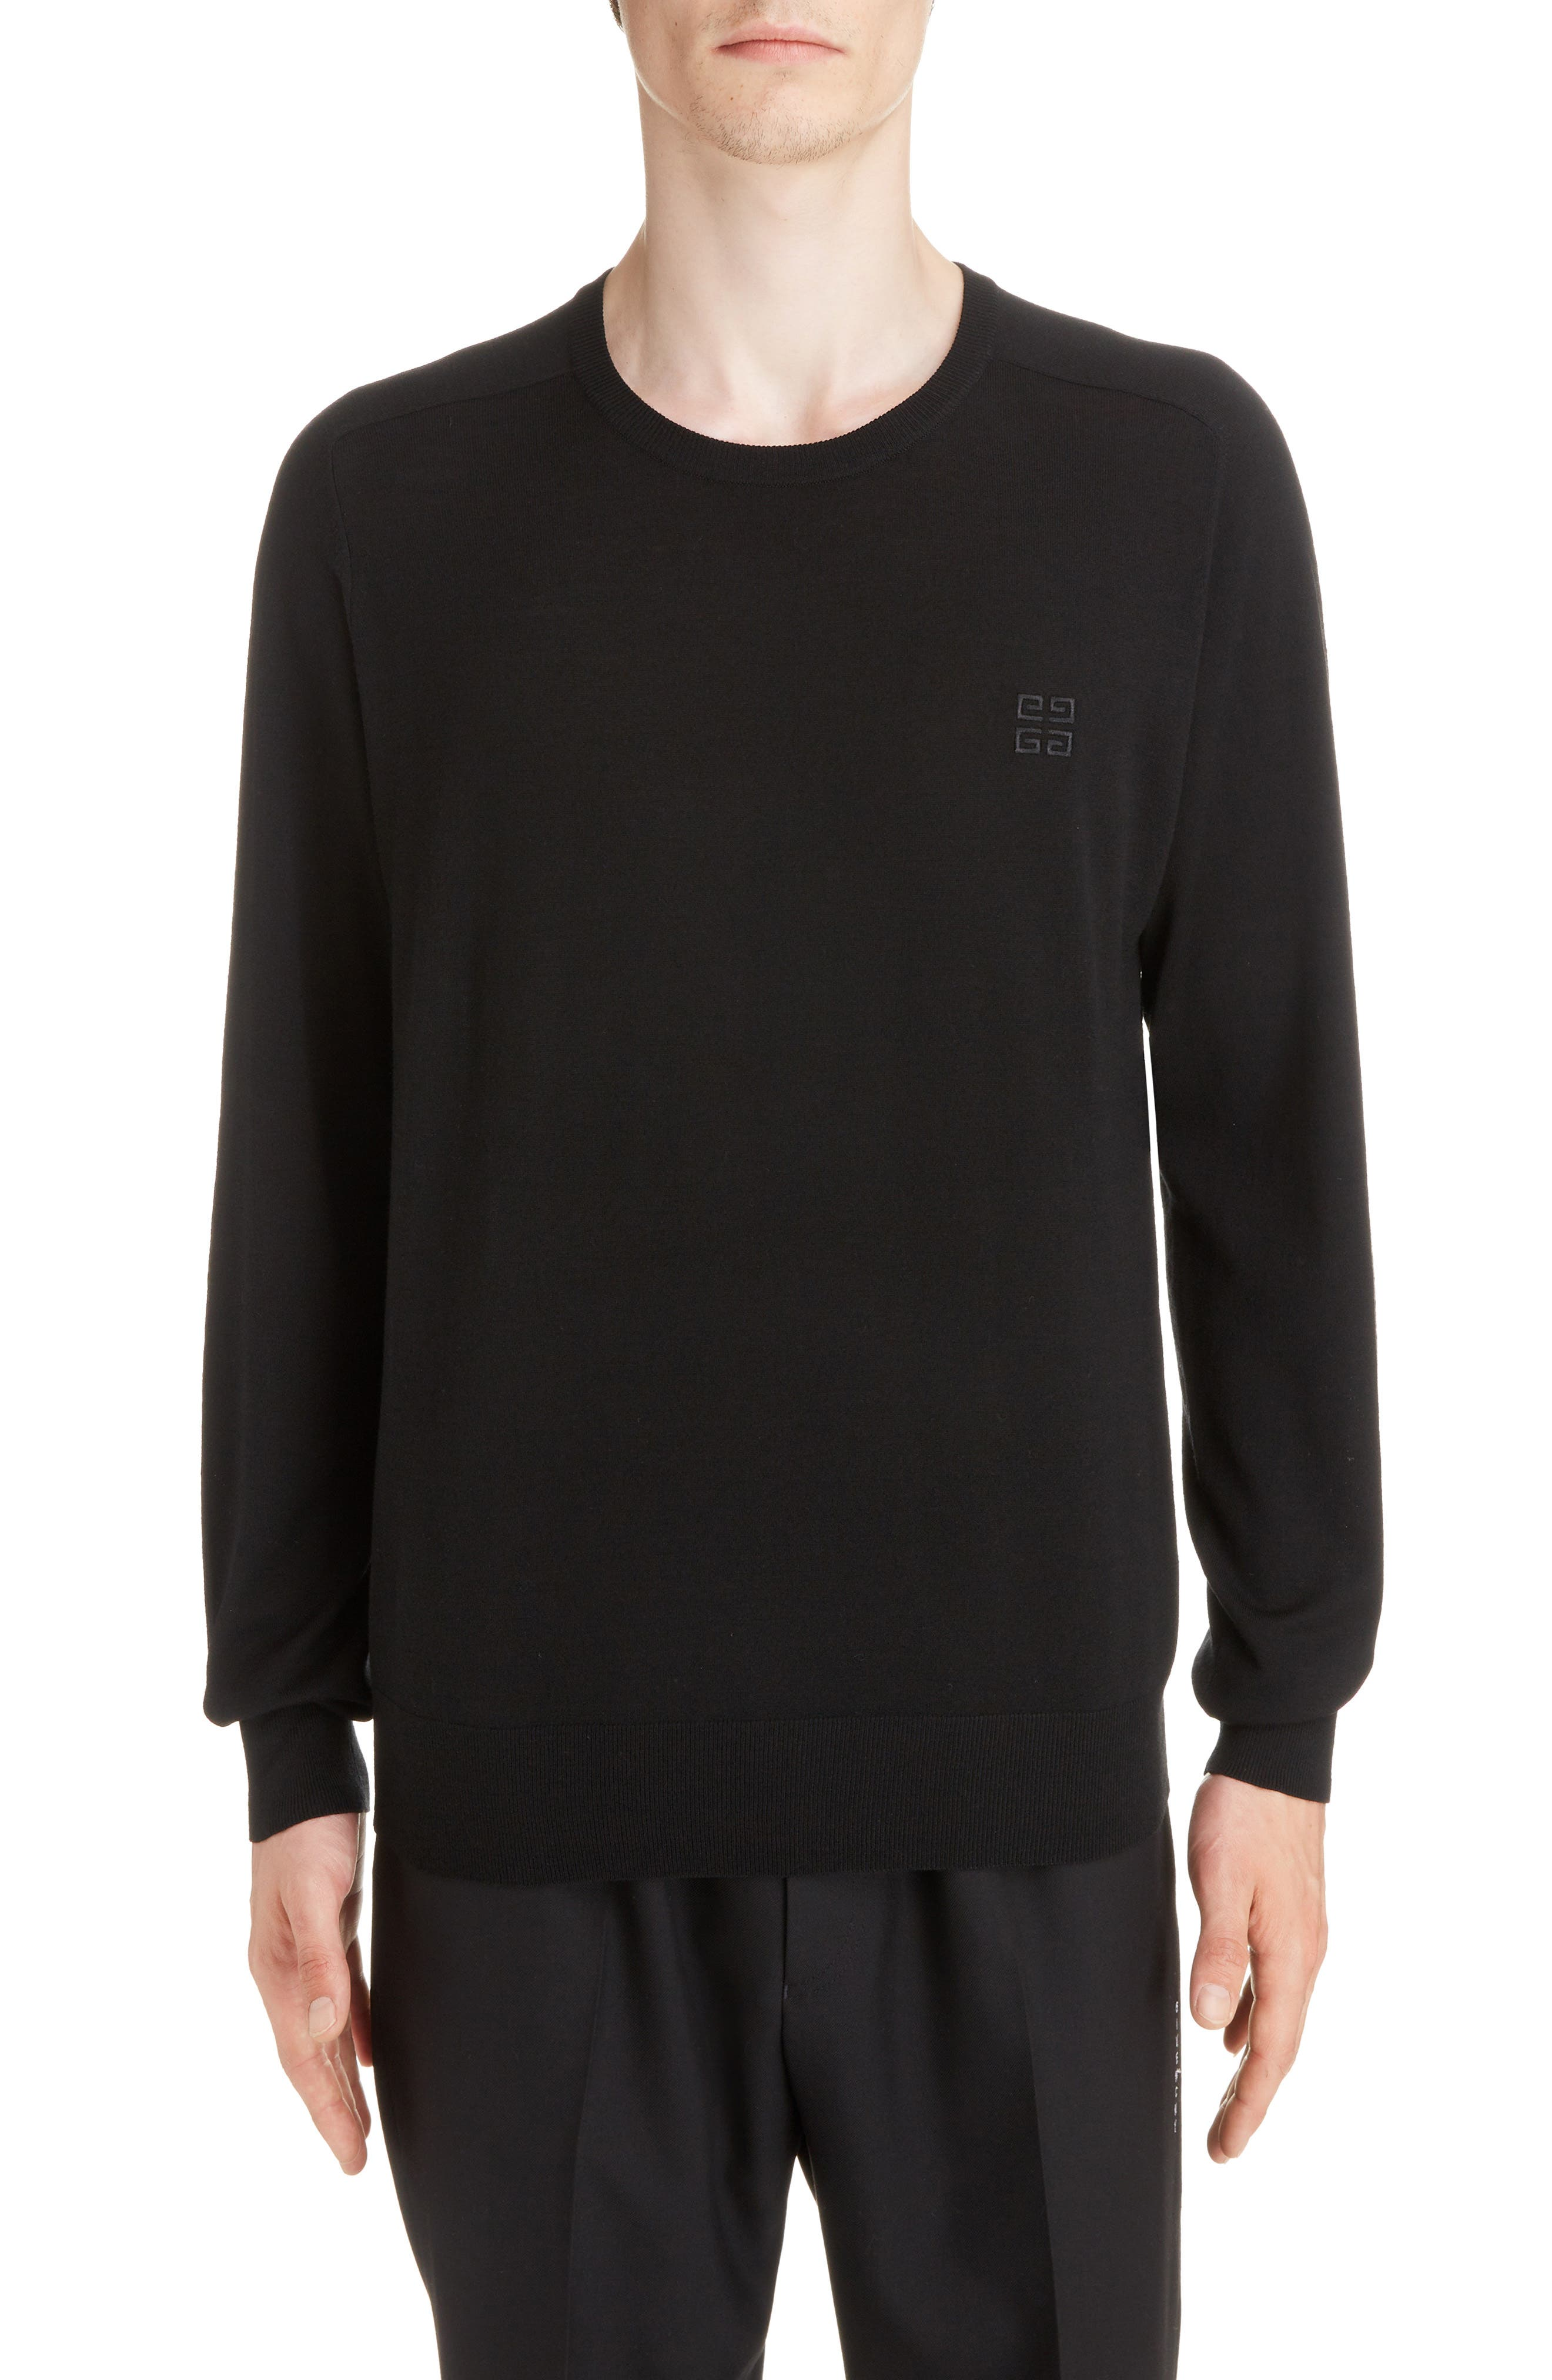 4G Wool Crewneck Sweater,                         Main,                         color, BLACK